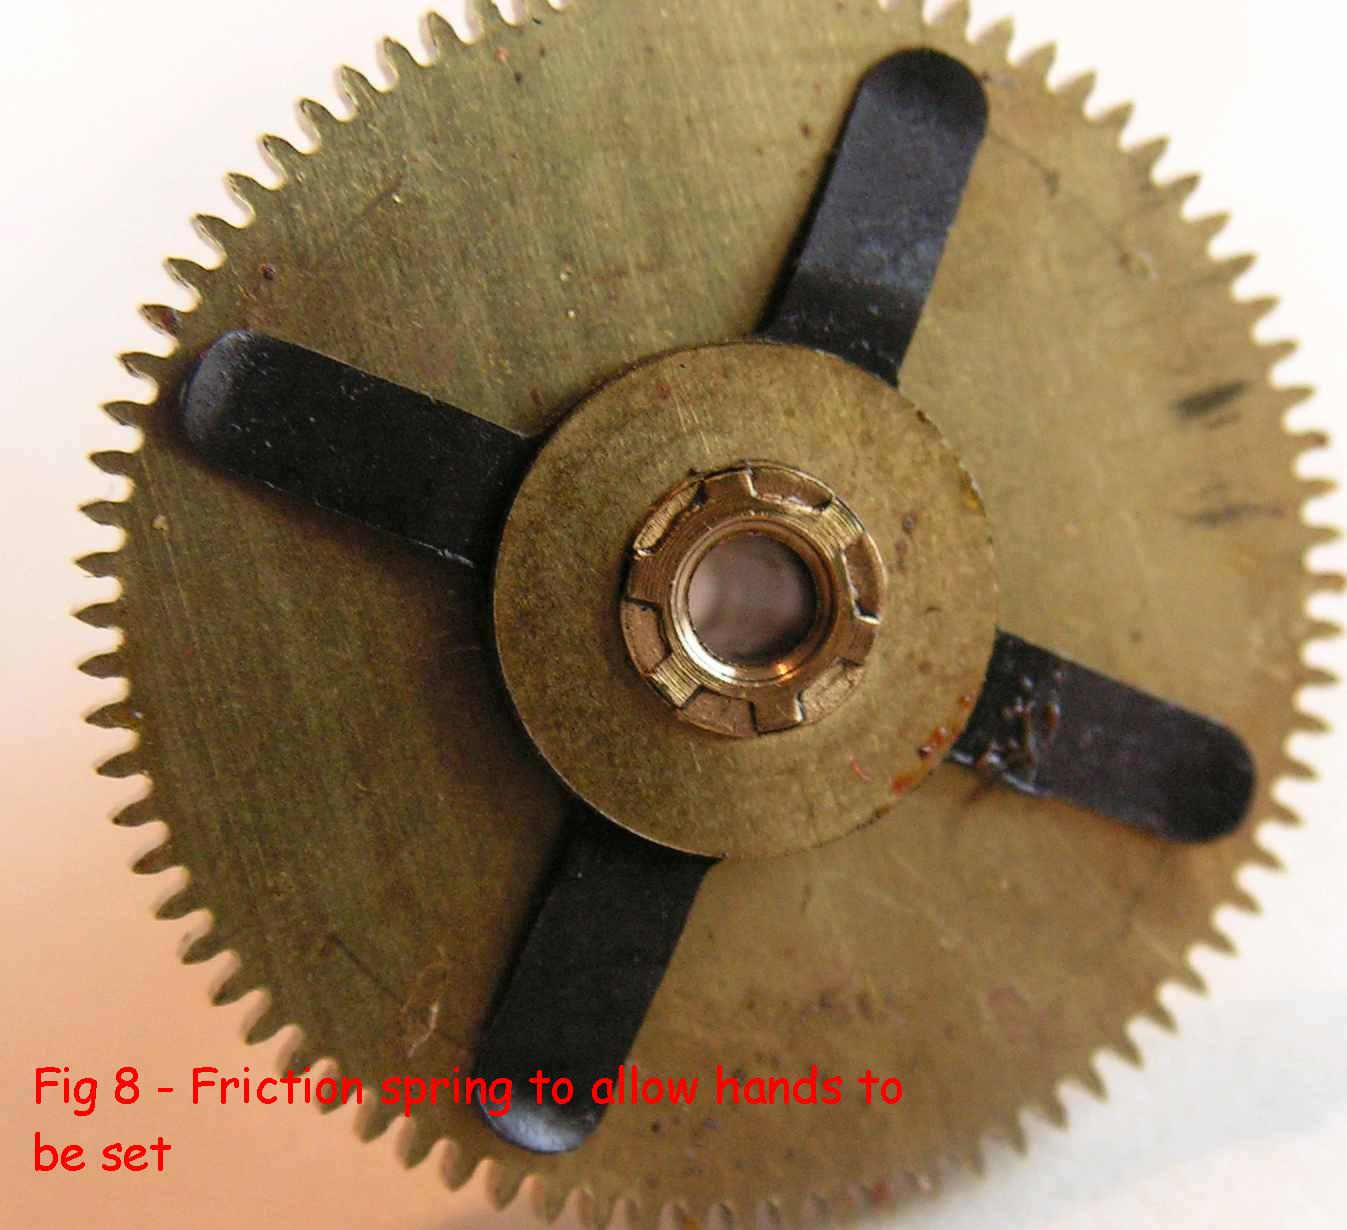 Fig 8 - friction spring allows hands to be set